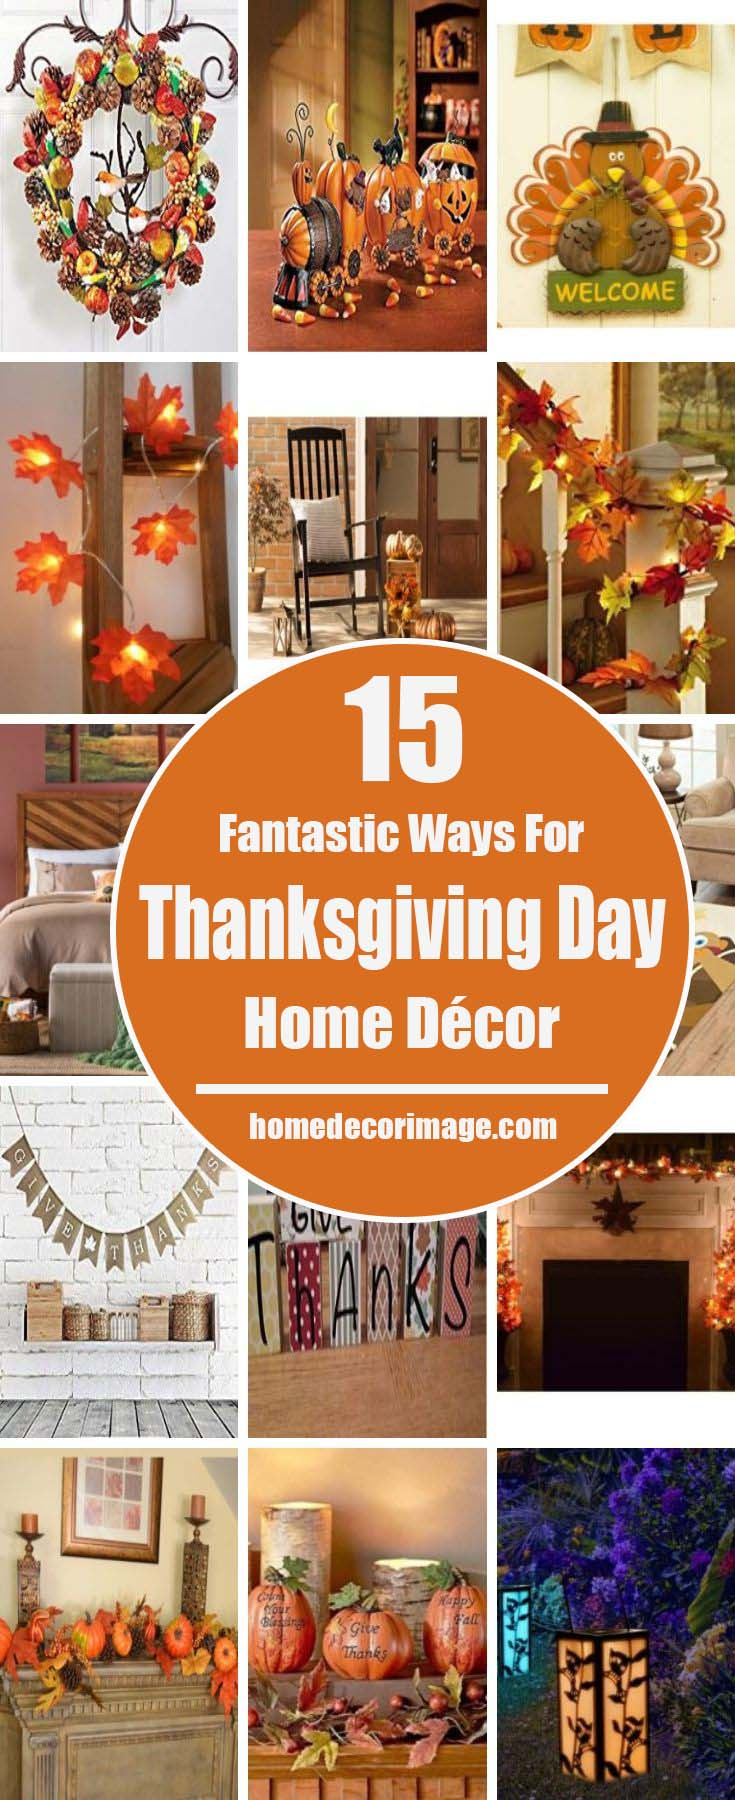 These fantastic decorations are the symbol of exquisite taste and wonderful dreams. Have a look at the decors that would give a touch of grace to your home. #Thanksgiving Day #decoration #homedecorimage